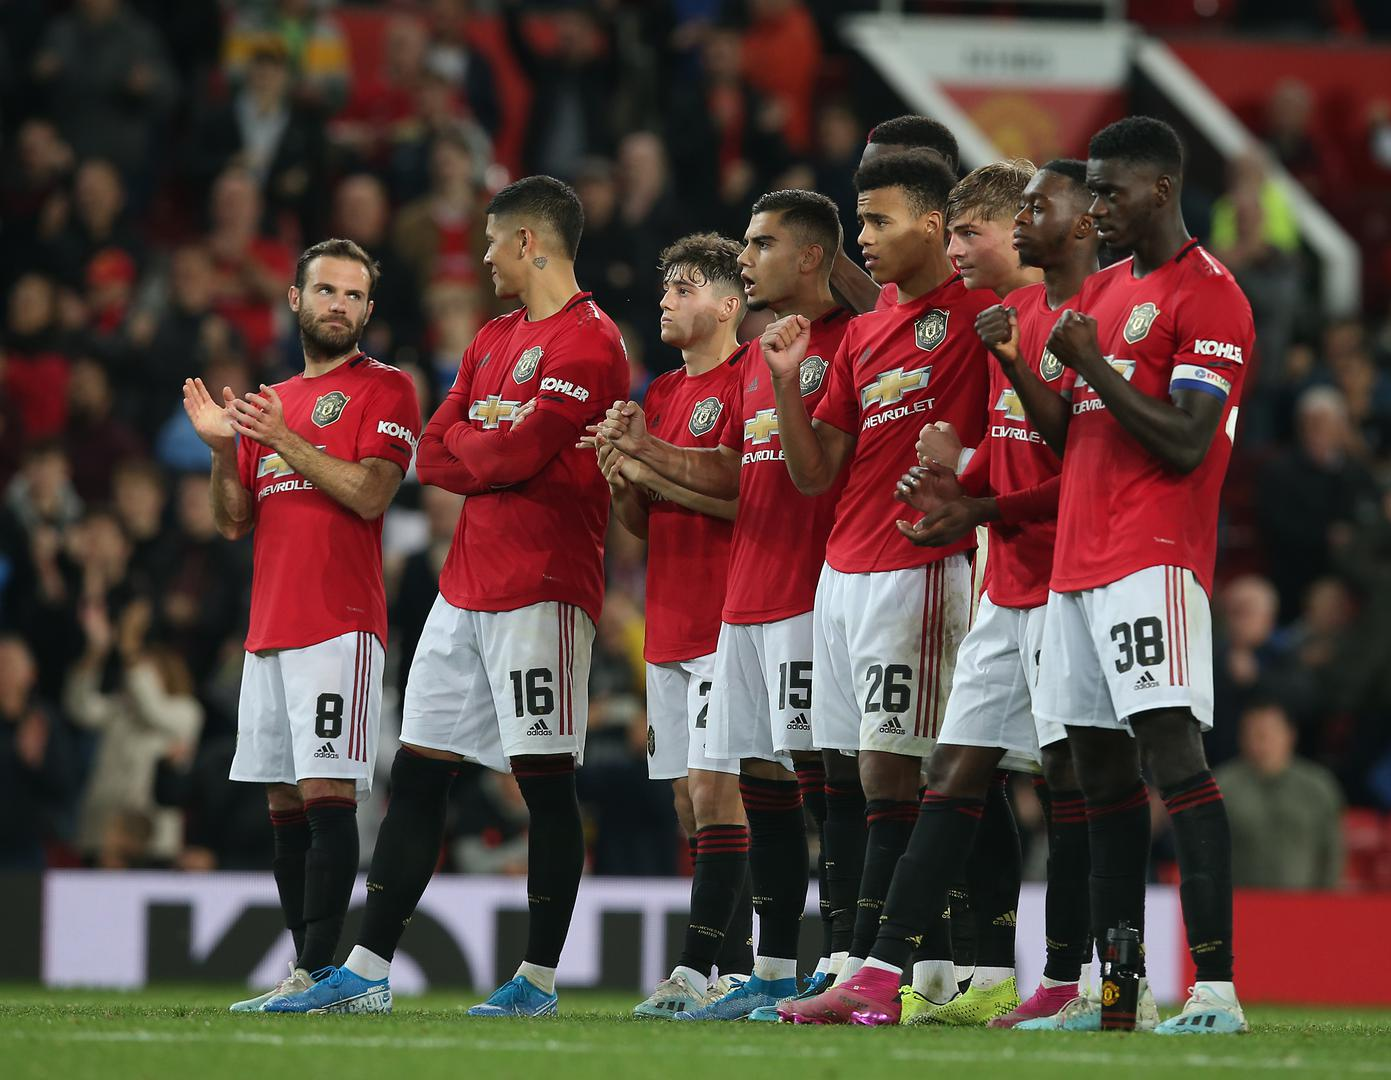 United players during the shoot-out.